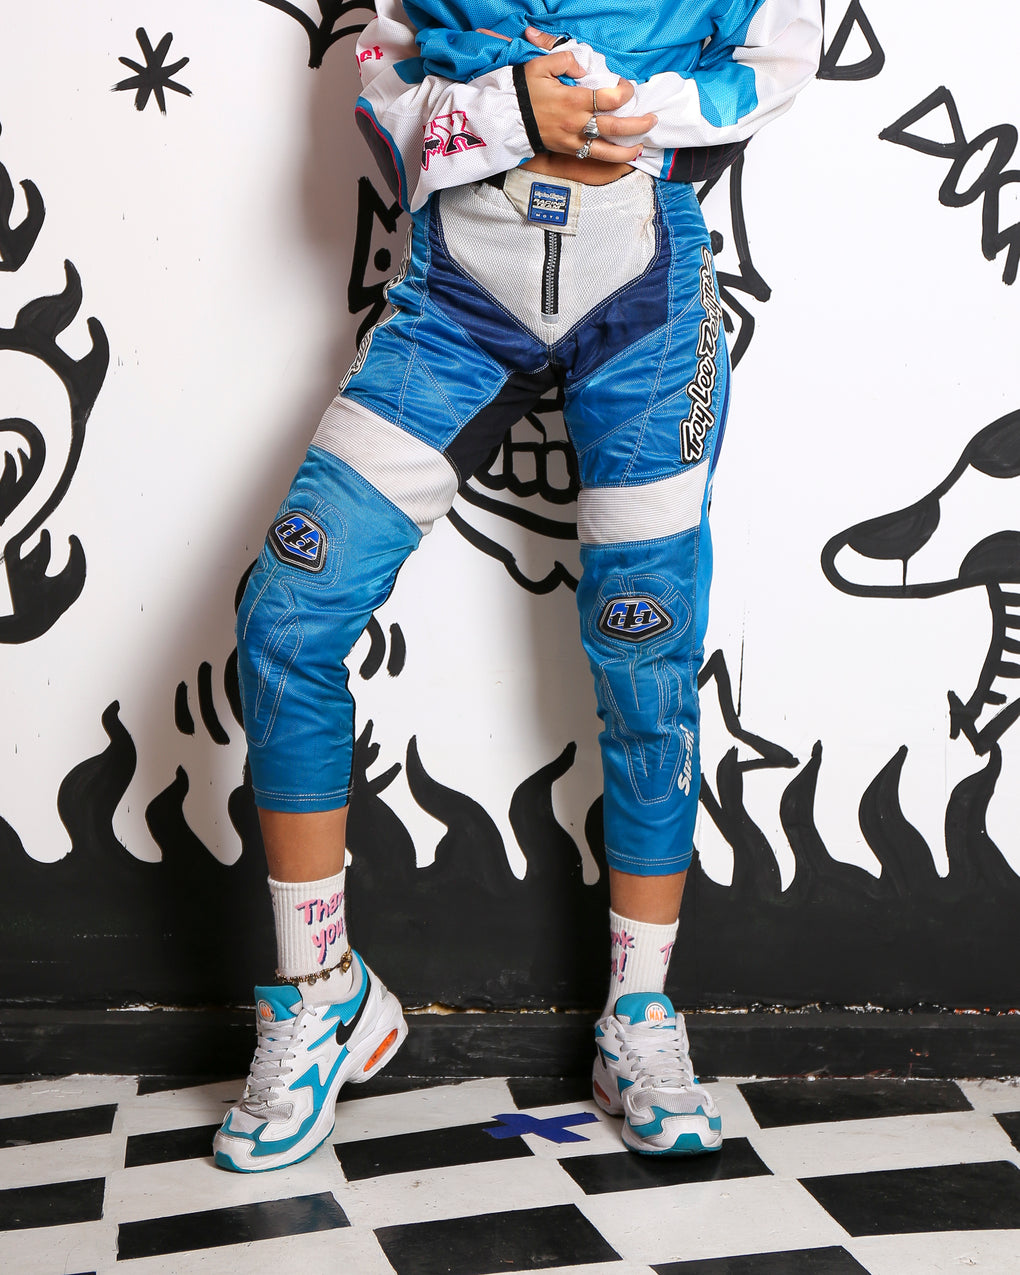 TROY LEE DESIGNS MOTO X PANTS - FROTHLYF